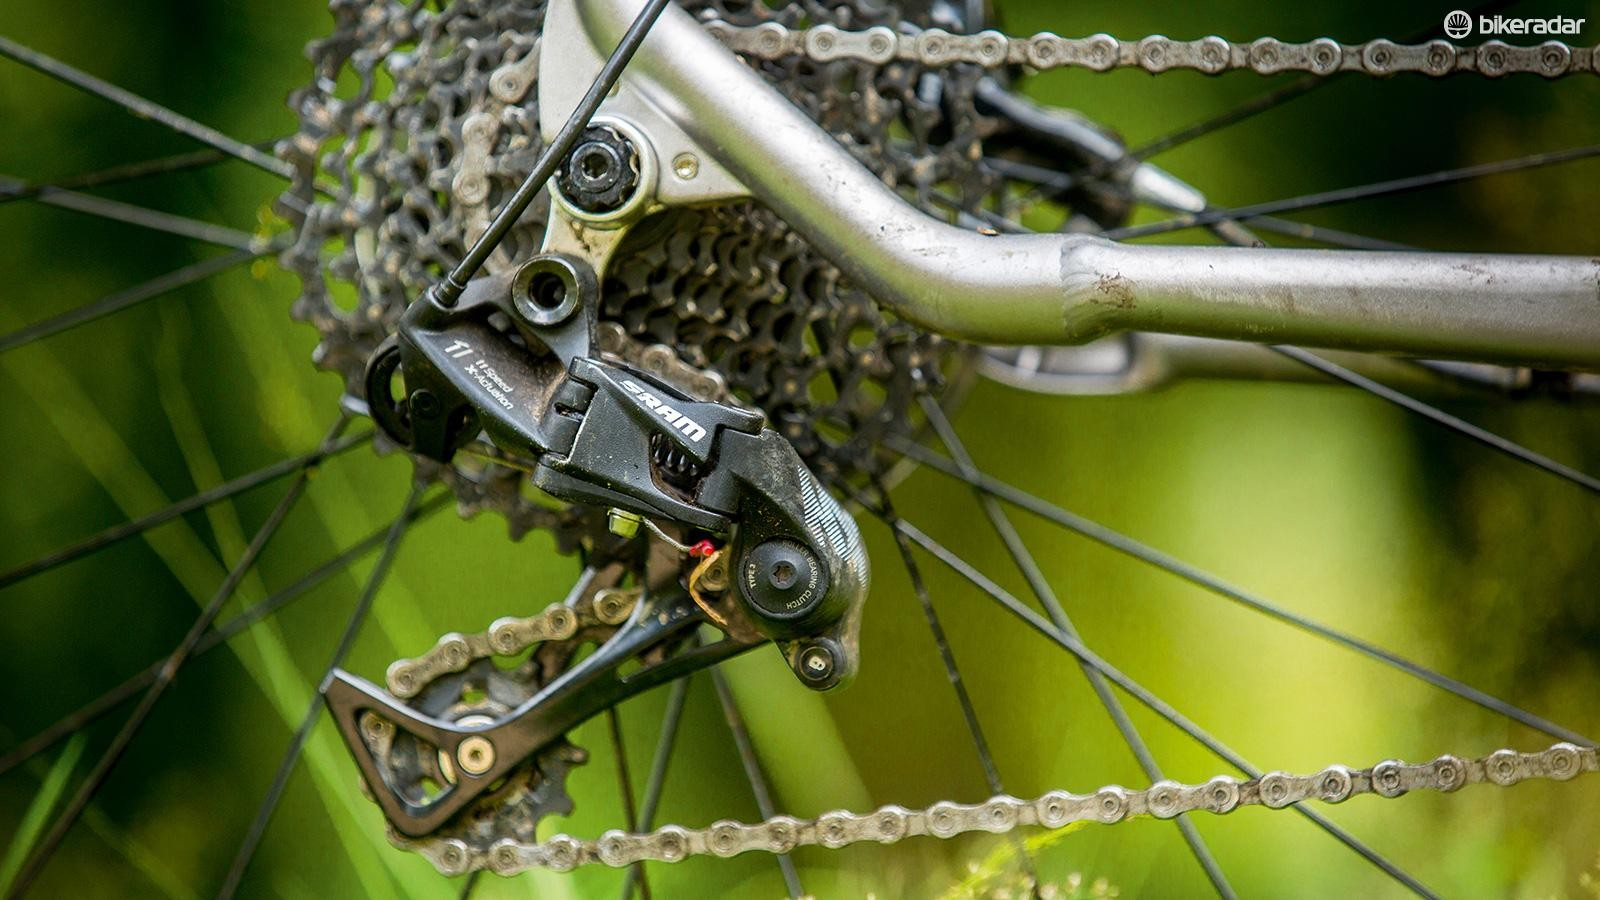 The SRAM NX drivetrain is a kit highlight, offering simple, reliable 1x11 shifting